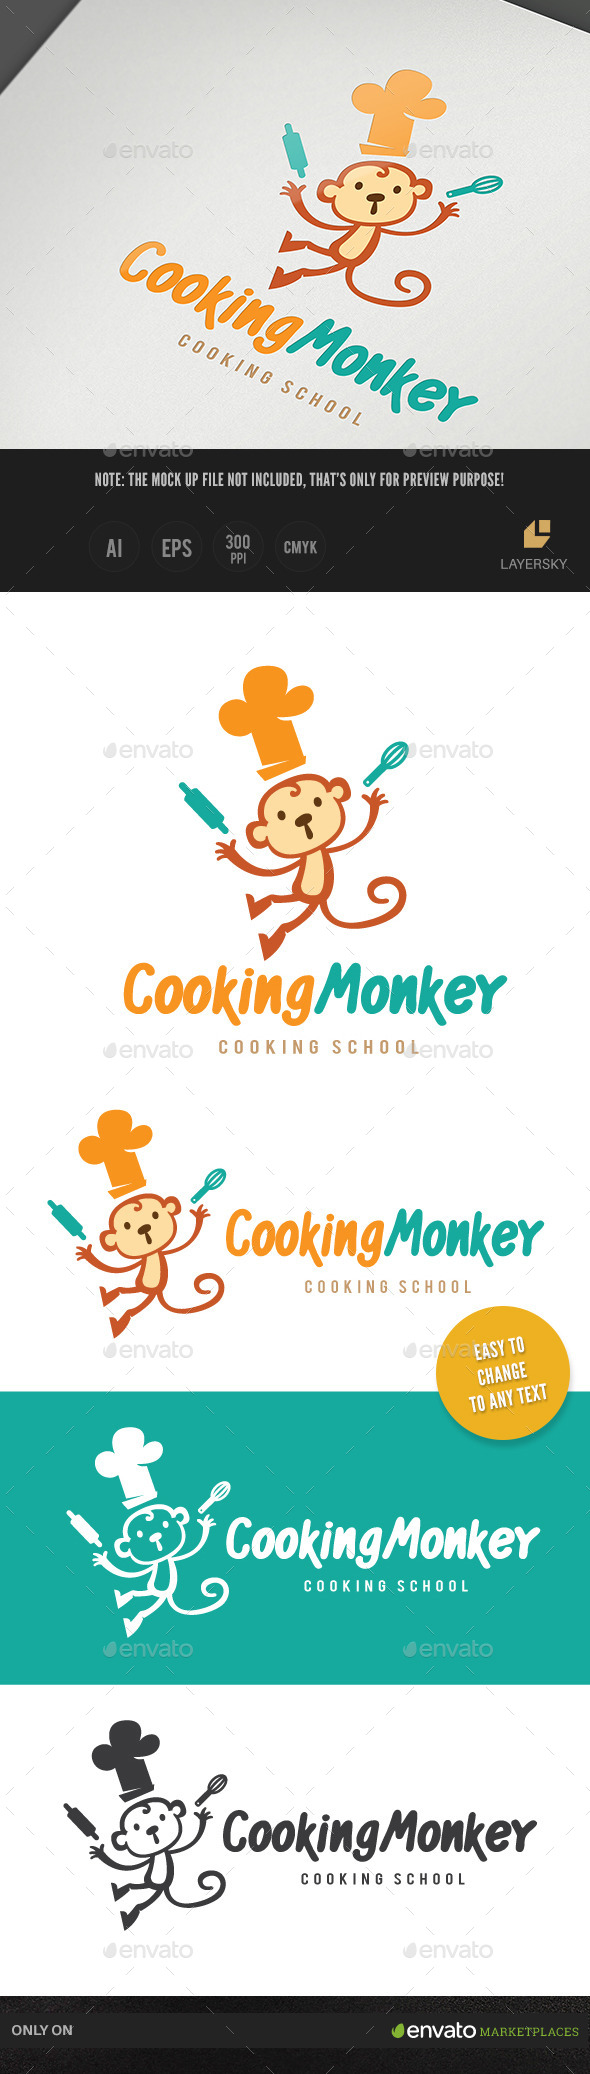 Cooking Monkey